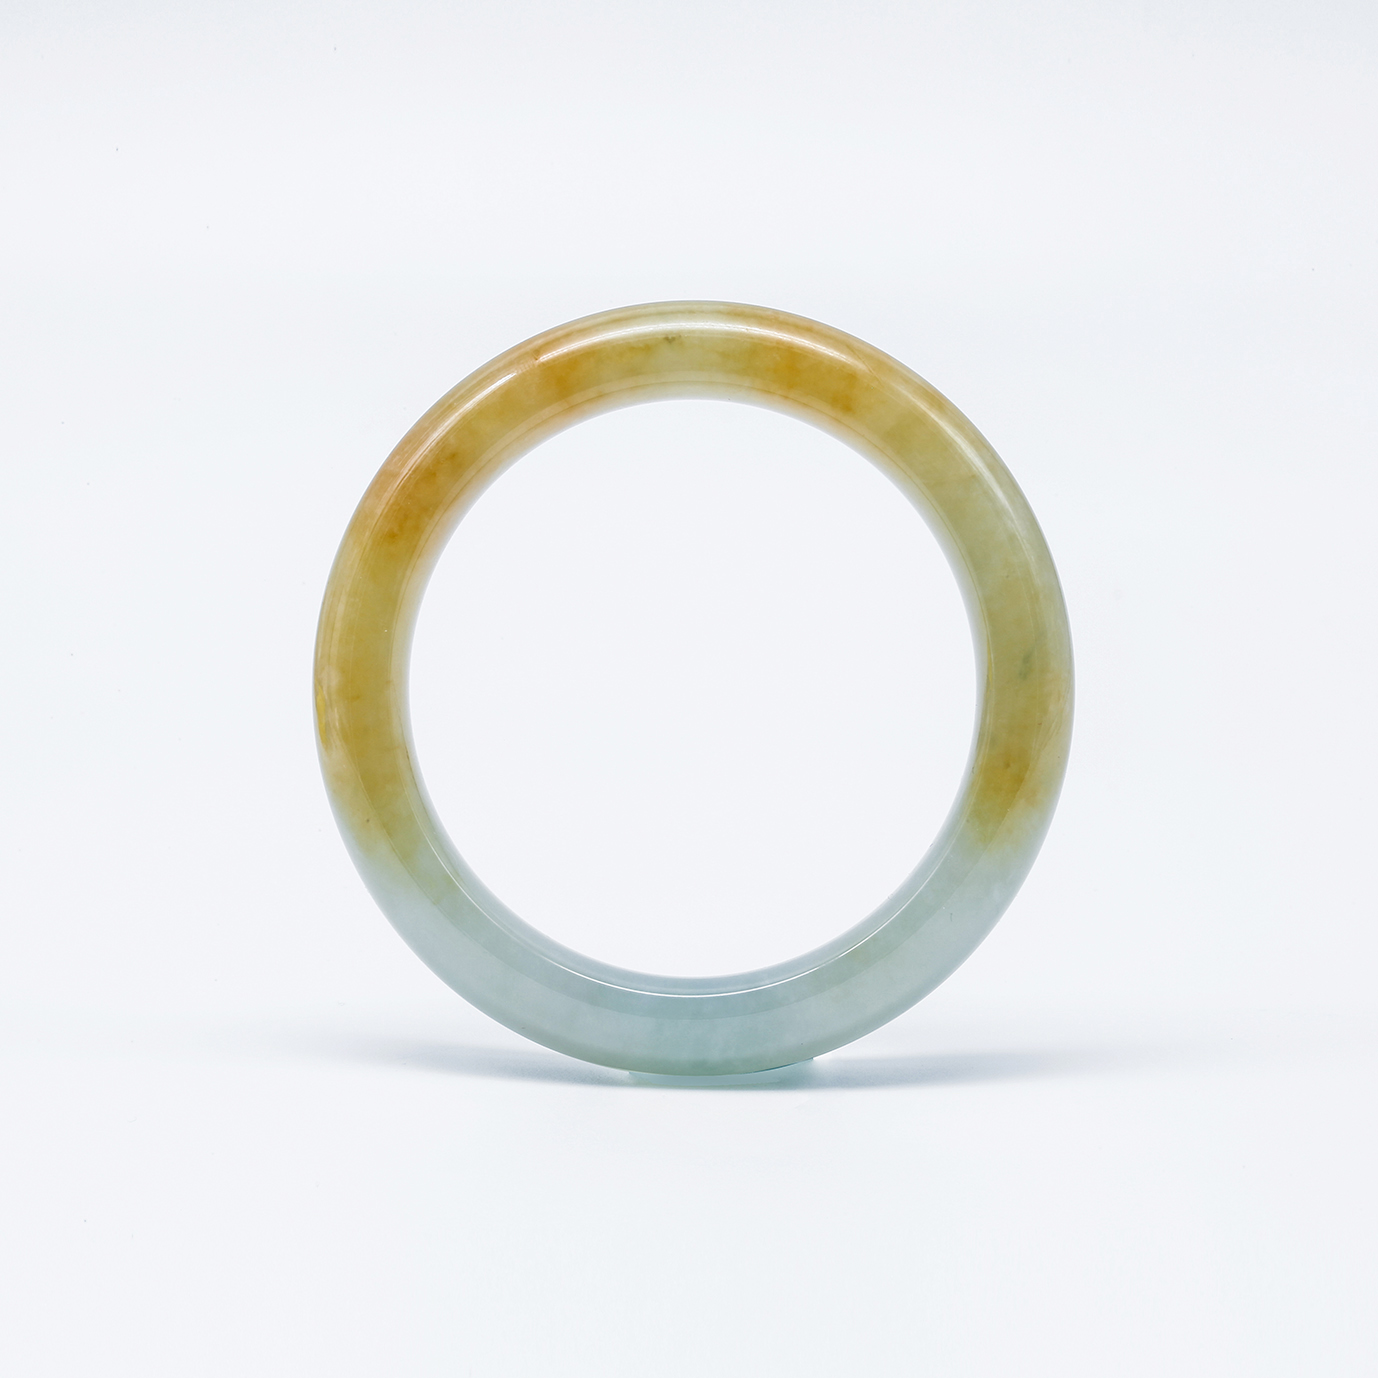 Transclucent Yellow Jadeite Jade Bangle